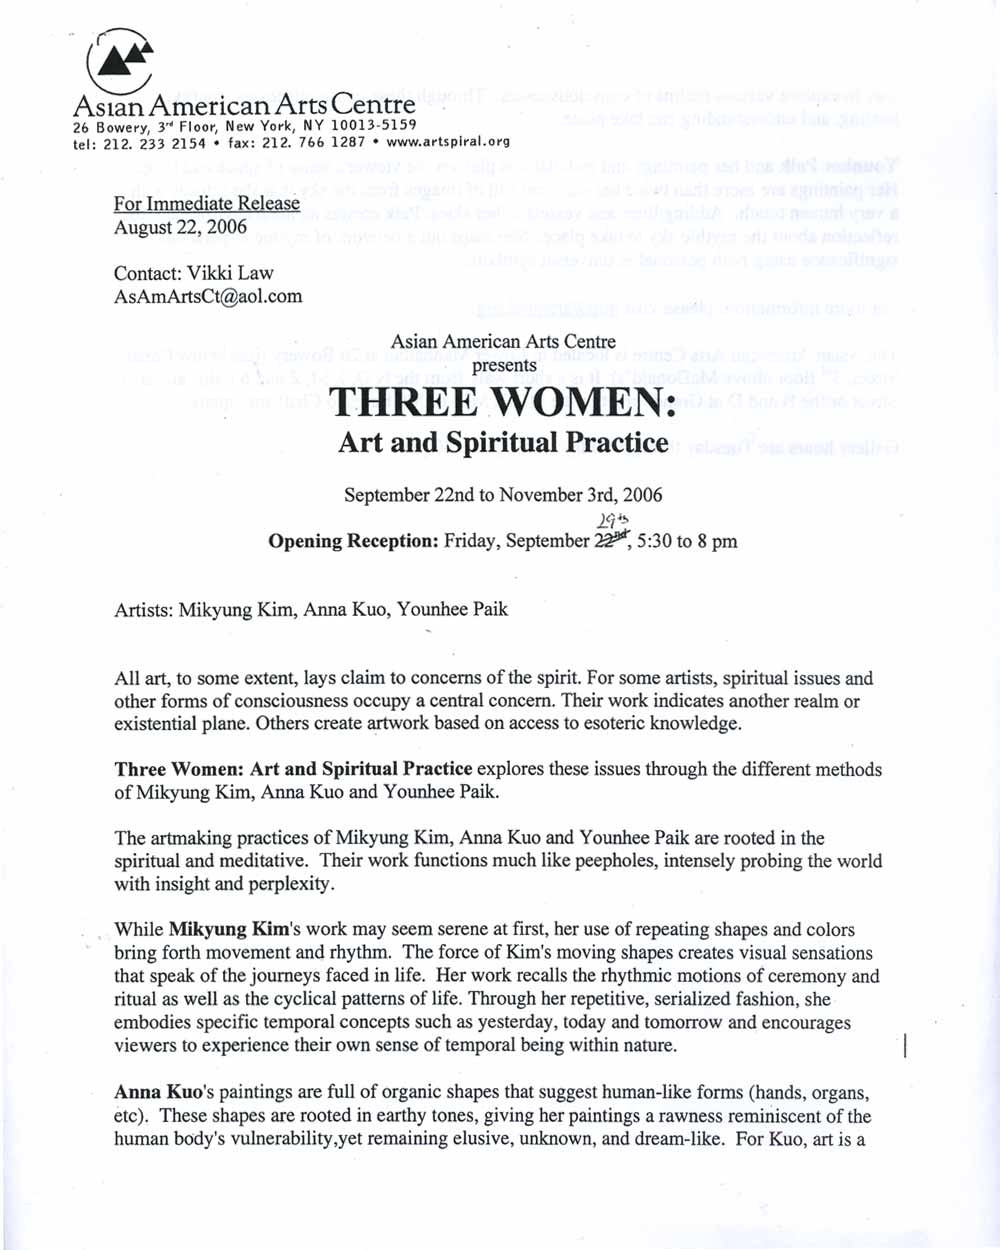 Three Women, press release, pg 1